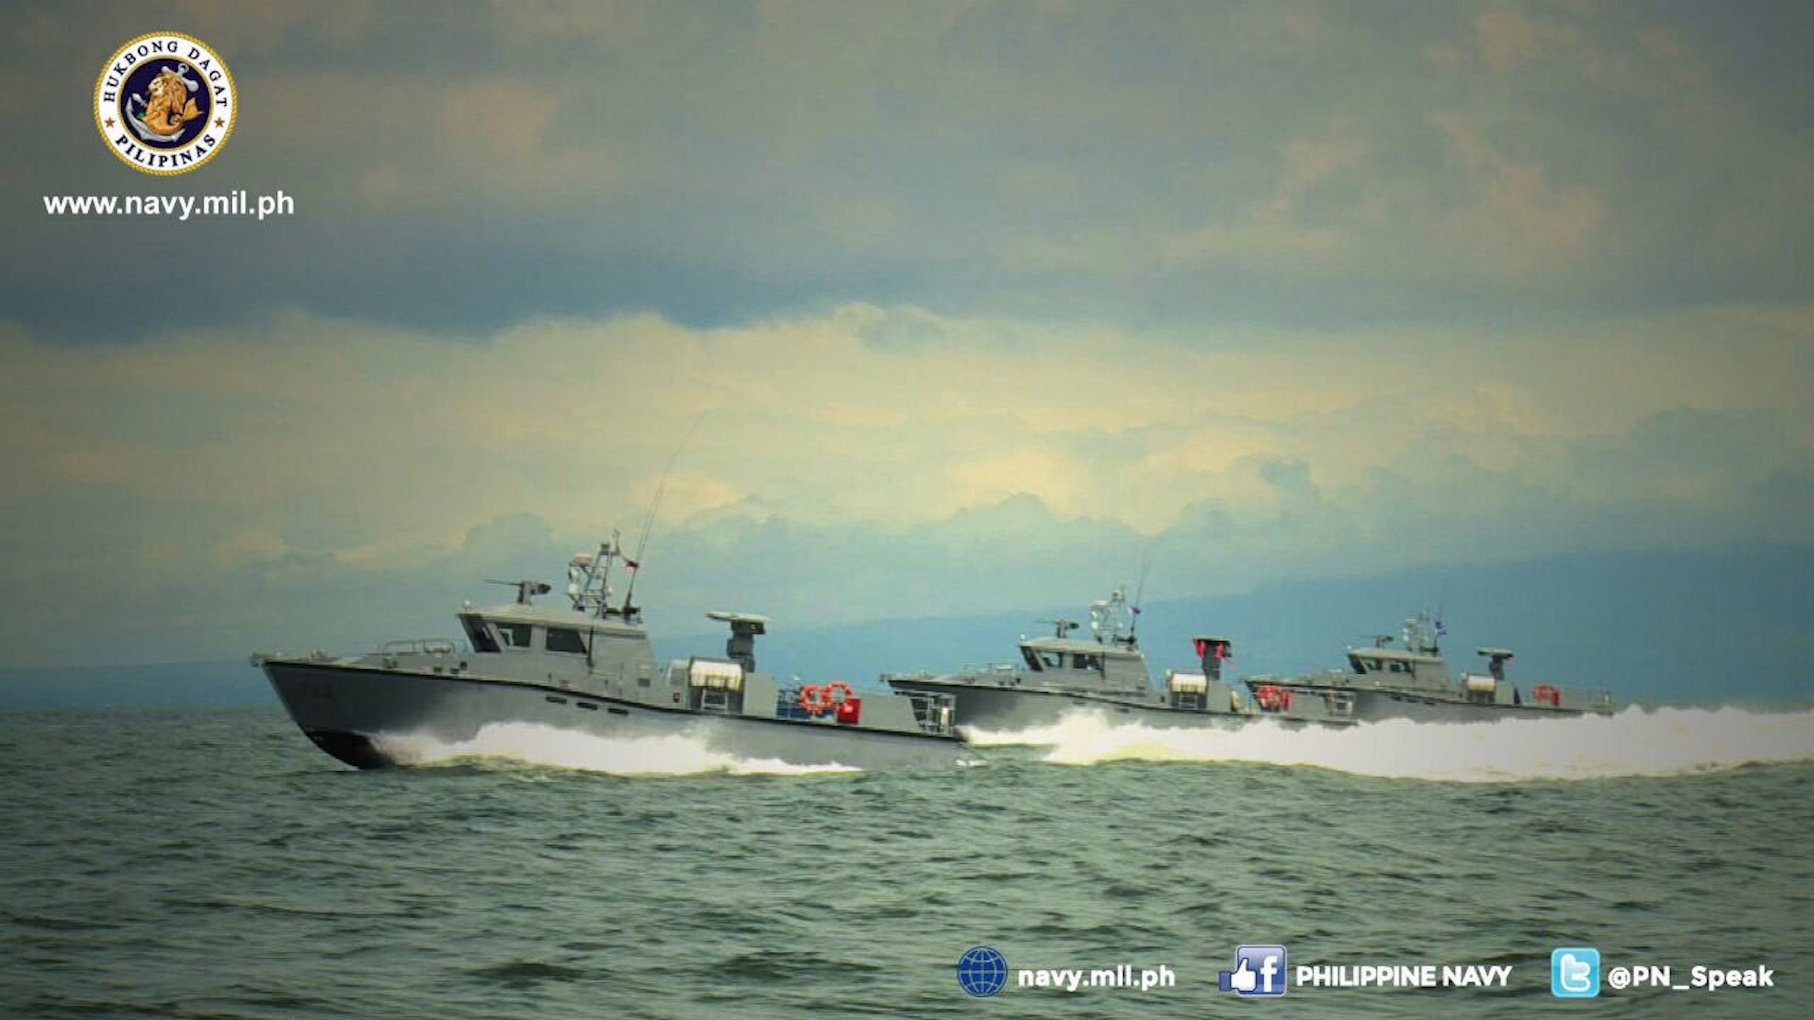 ATTACK CRAFT. The Philippine Navy's multi-purpose attack craft (MPAC) on a test sail. Photo from the Philippine Navy